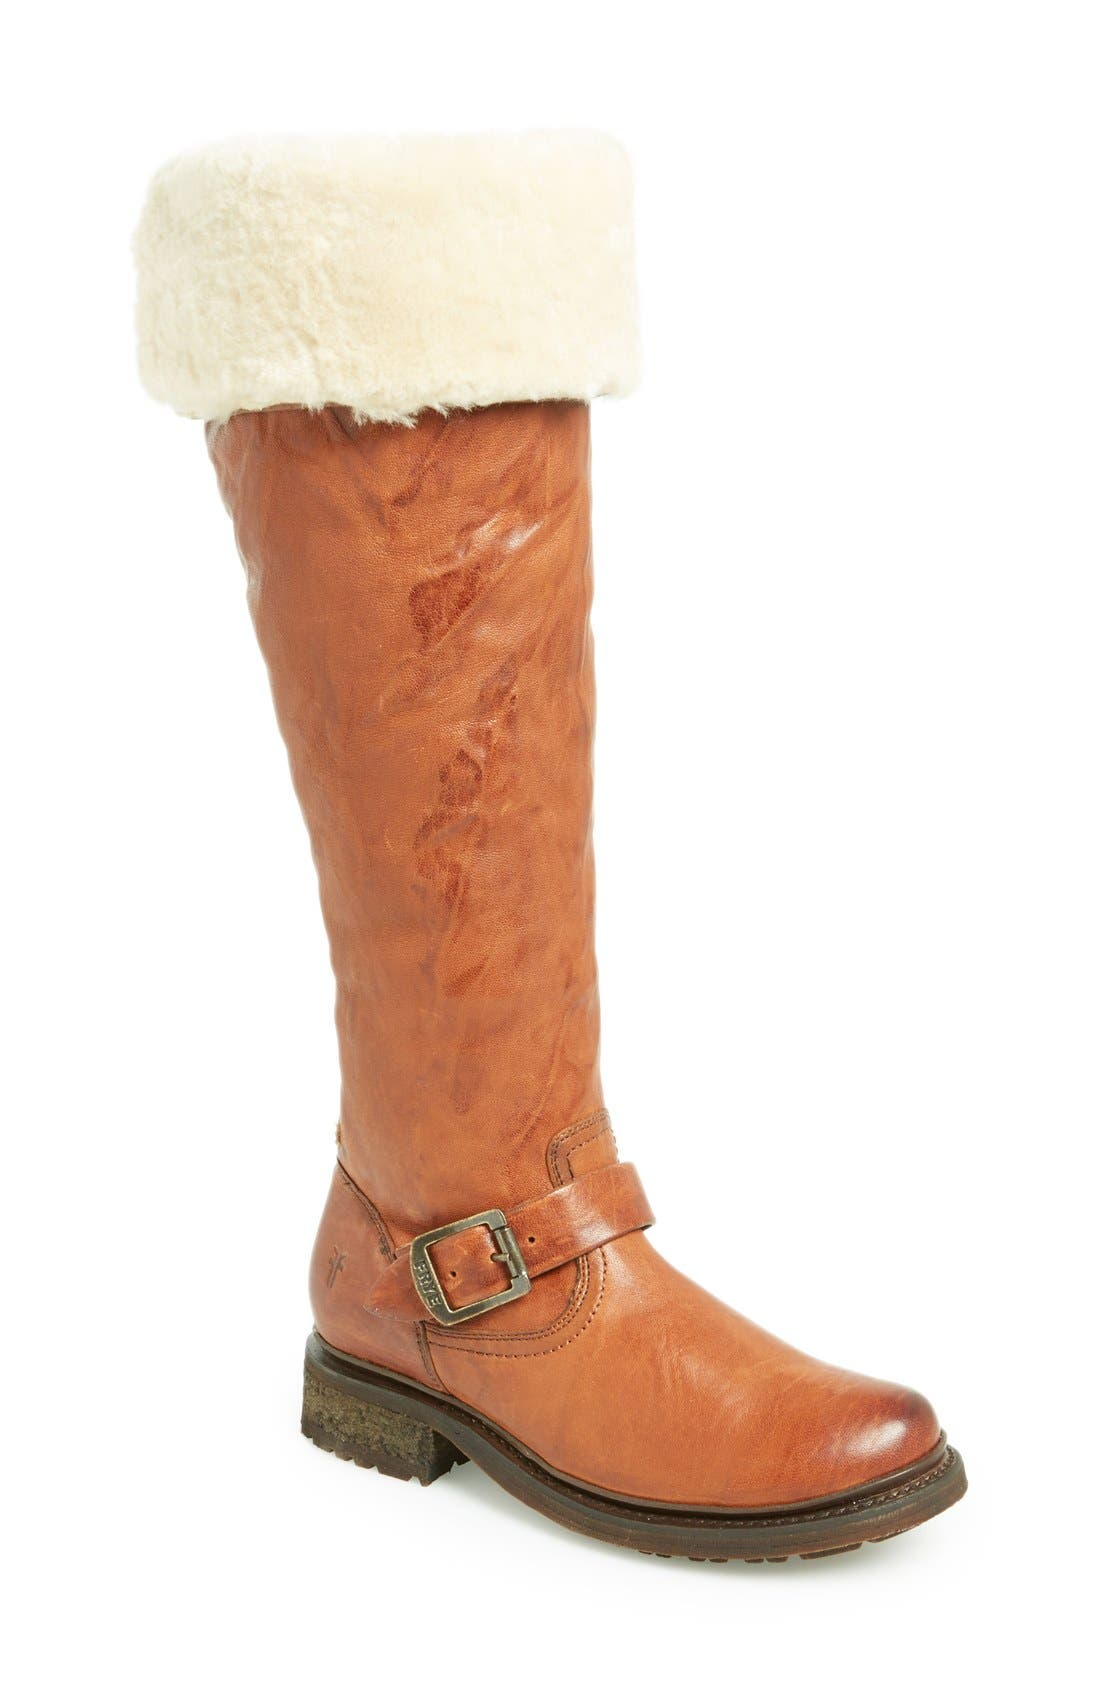 Main Image - Frye 'Valerie' Cuff Over the Knee Boot (Women)